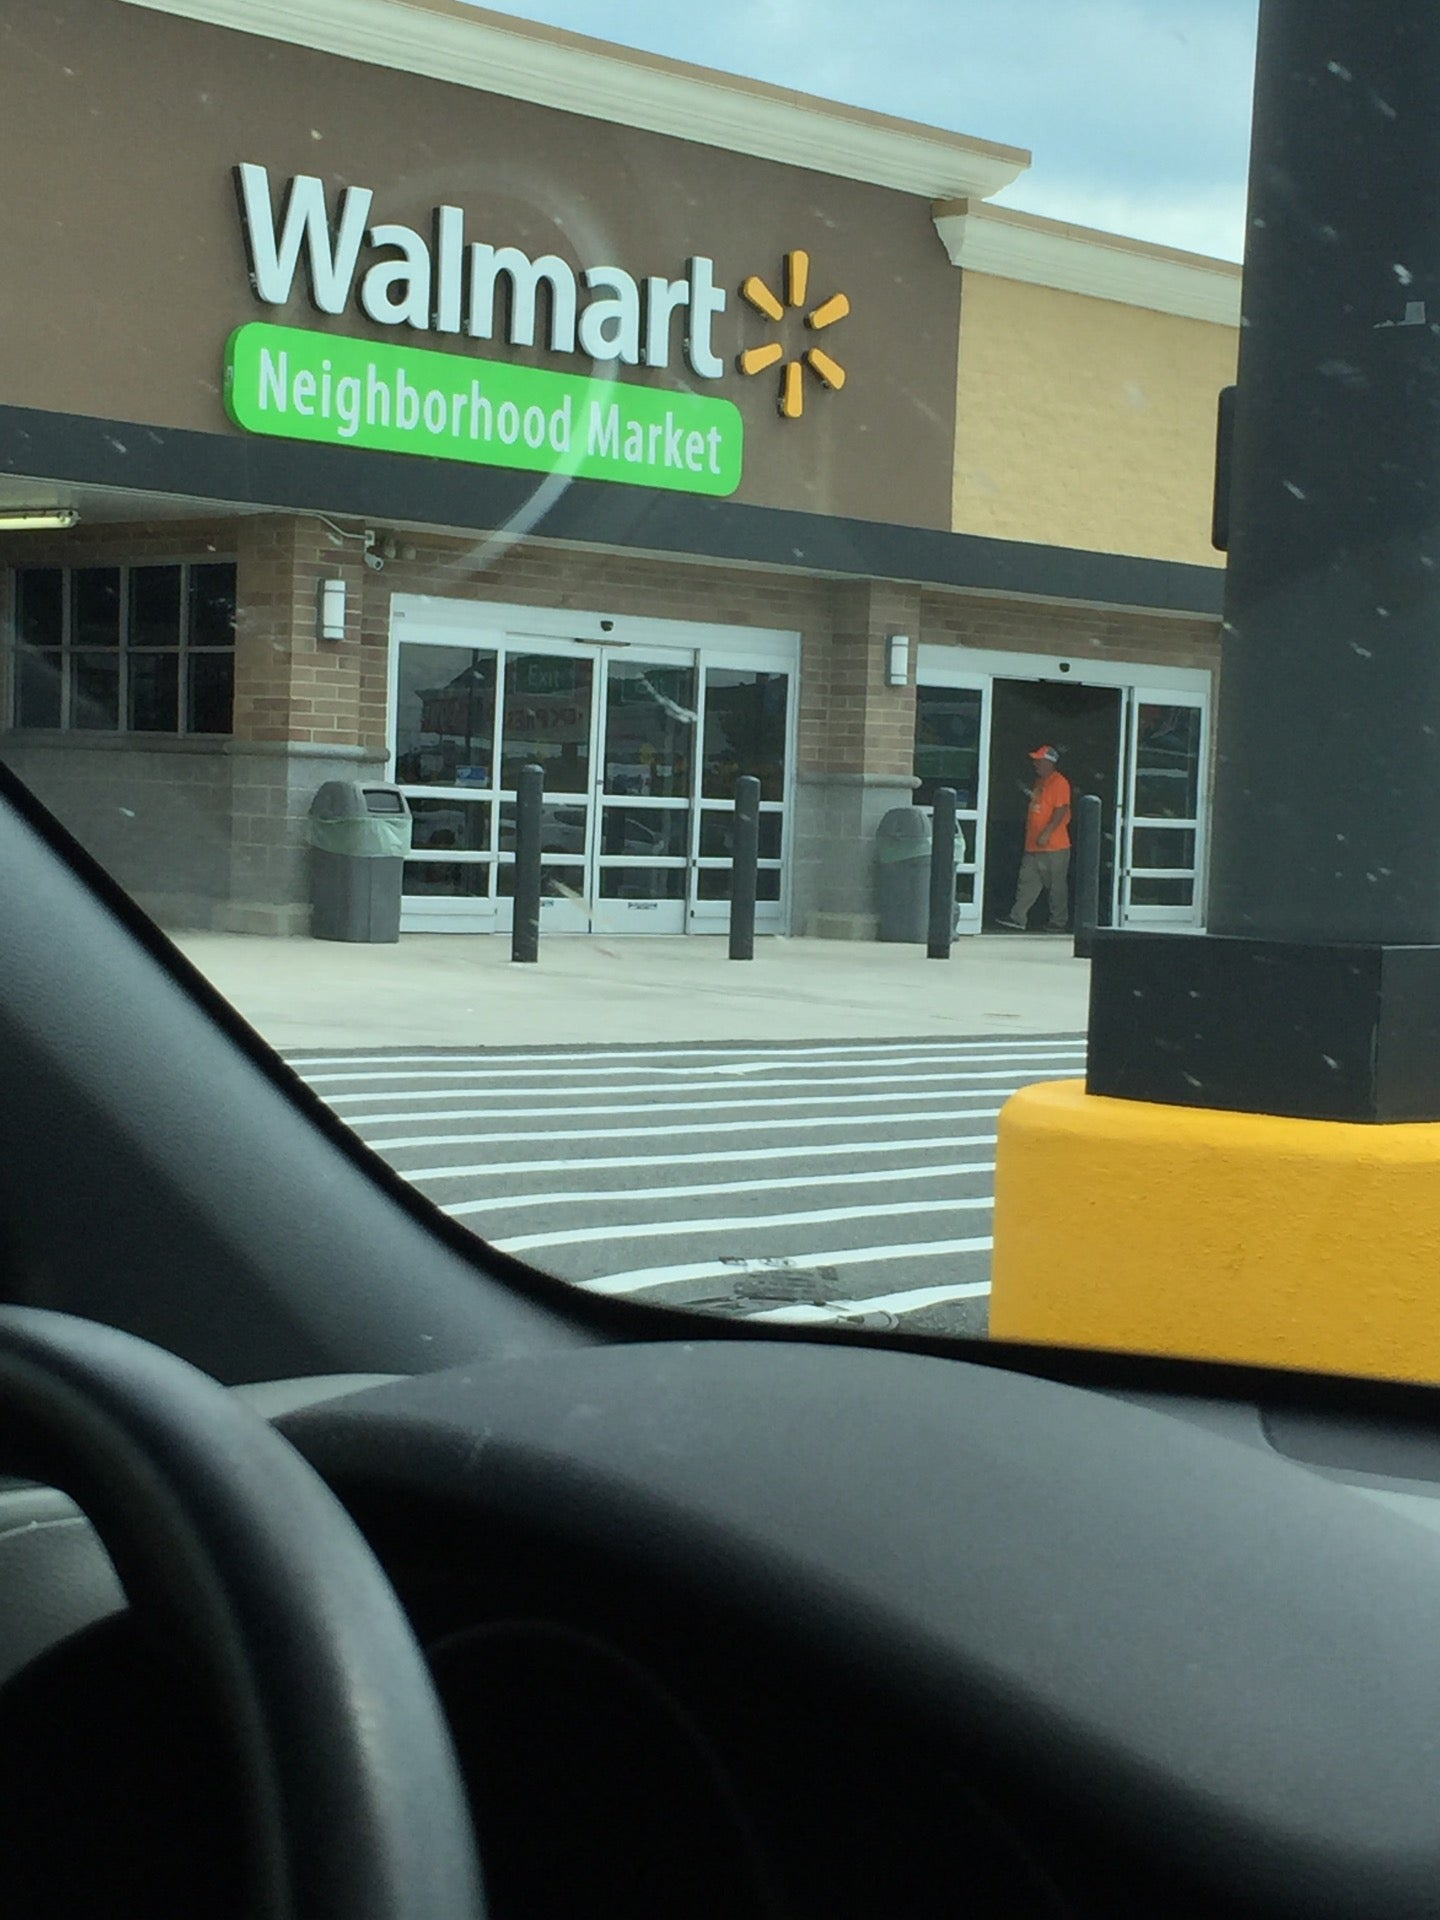 Walmart Neighborhood Market,